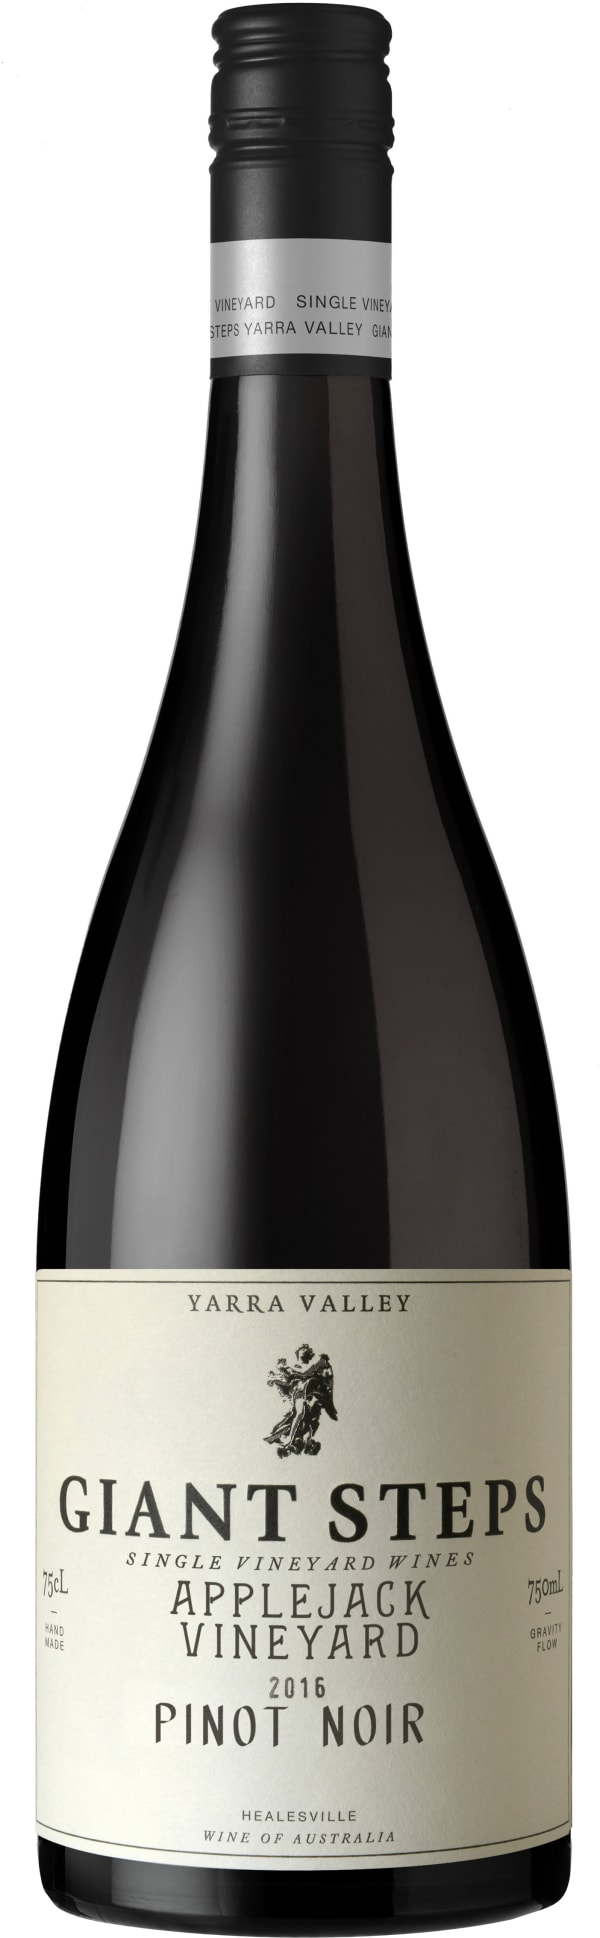 Giant Steps Applejack Vineyard Pinot Noir 2016